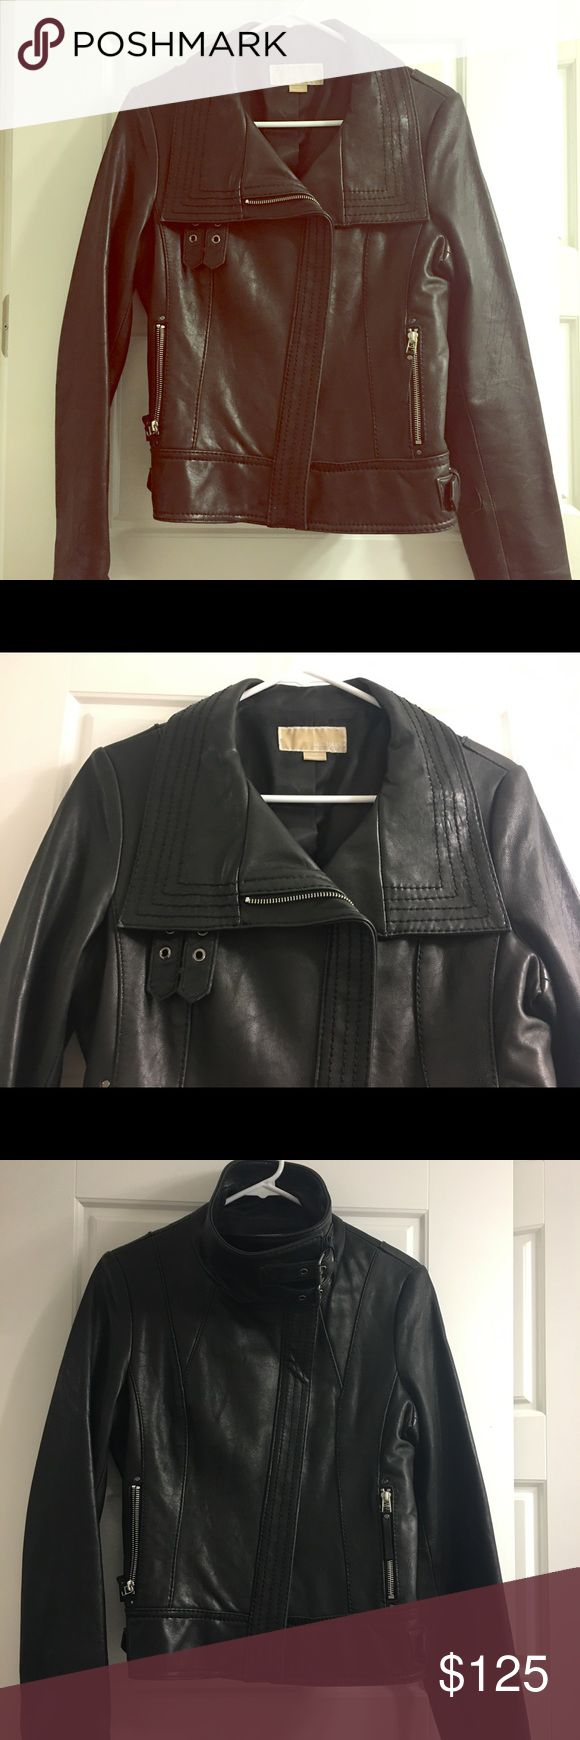 Michael Kors Leather Biker Jacket Get ready for the fall weather with this MICHAEL by Michael Kors leather biker jacket. Very stylish over a tshirt or chunky sweater. Small rip in leather on one of the sleeves, easily repaired. MICHAEL Michael Kors Jackets & Coats